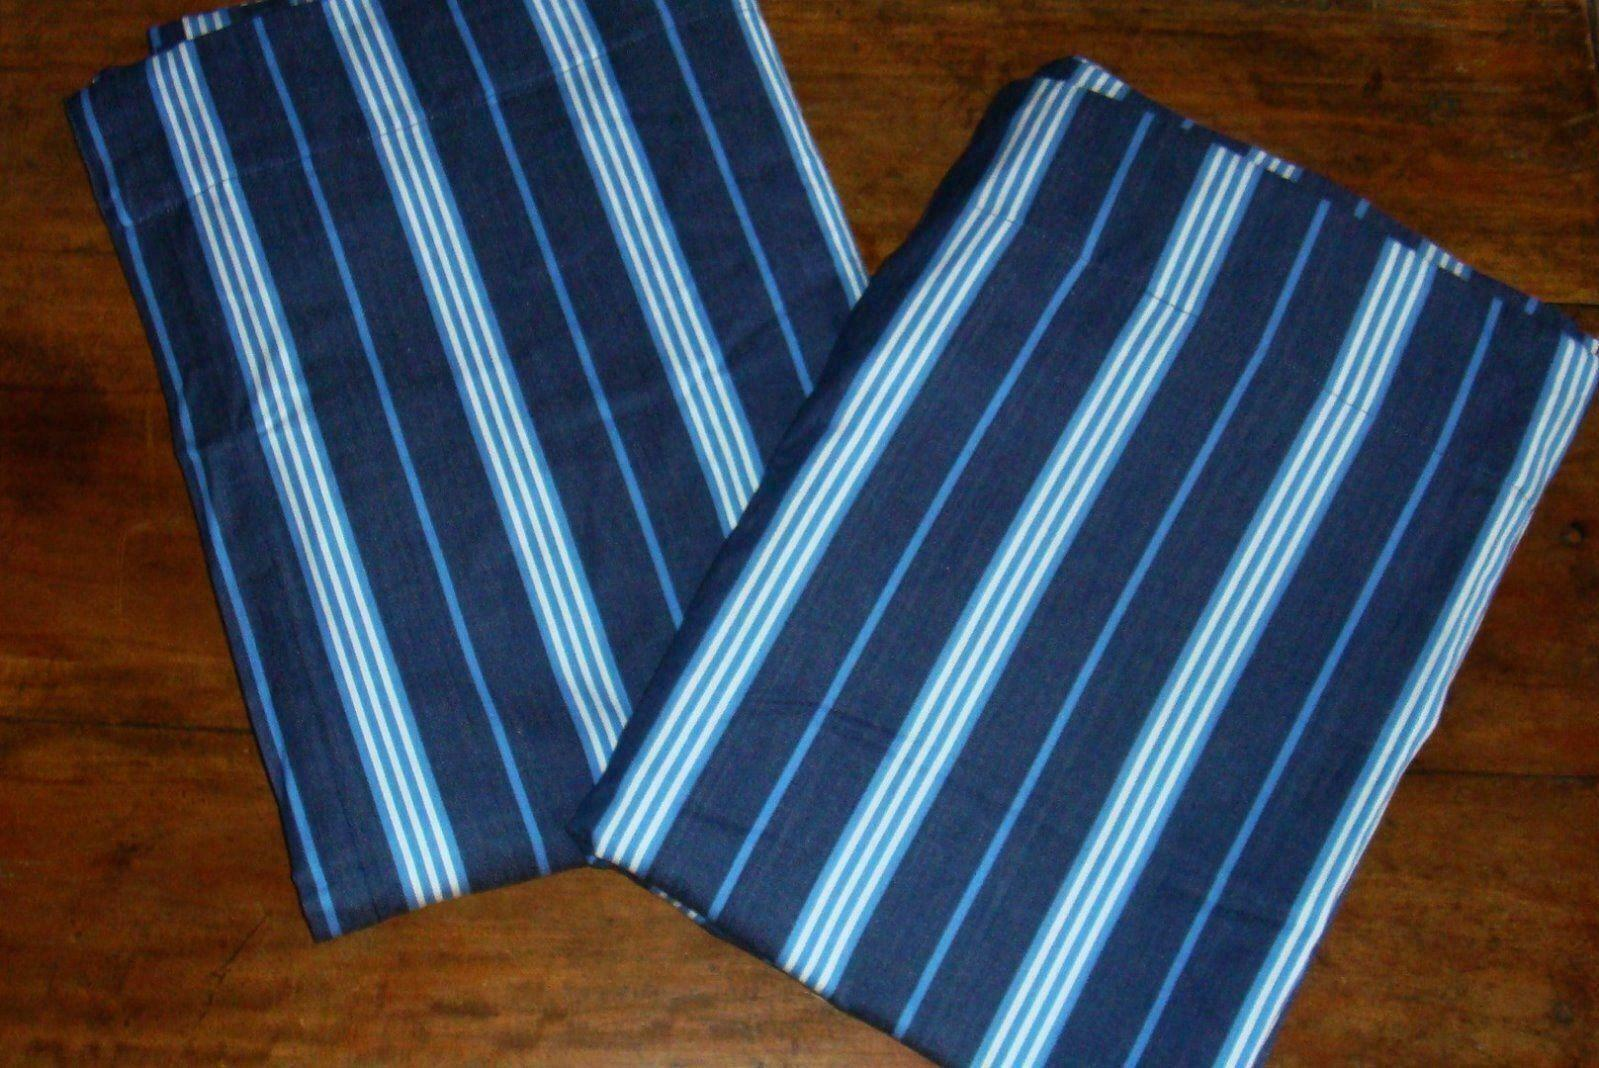 Primary image for Pottery Barn Kids Navy Blue 1 Classic Stripe Drapery Panel 44 X 63 EUC